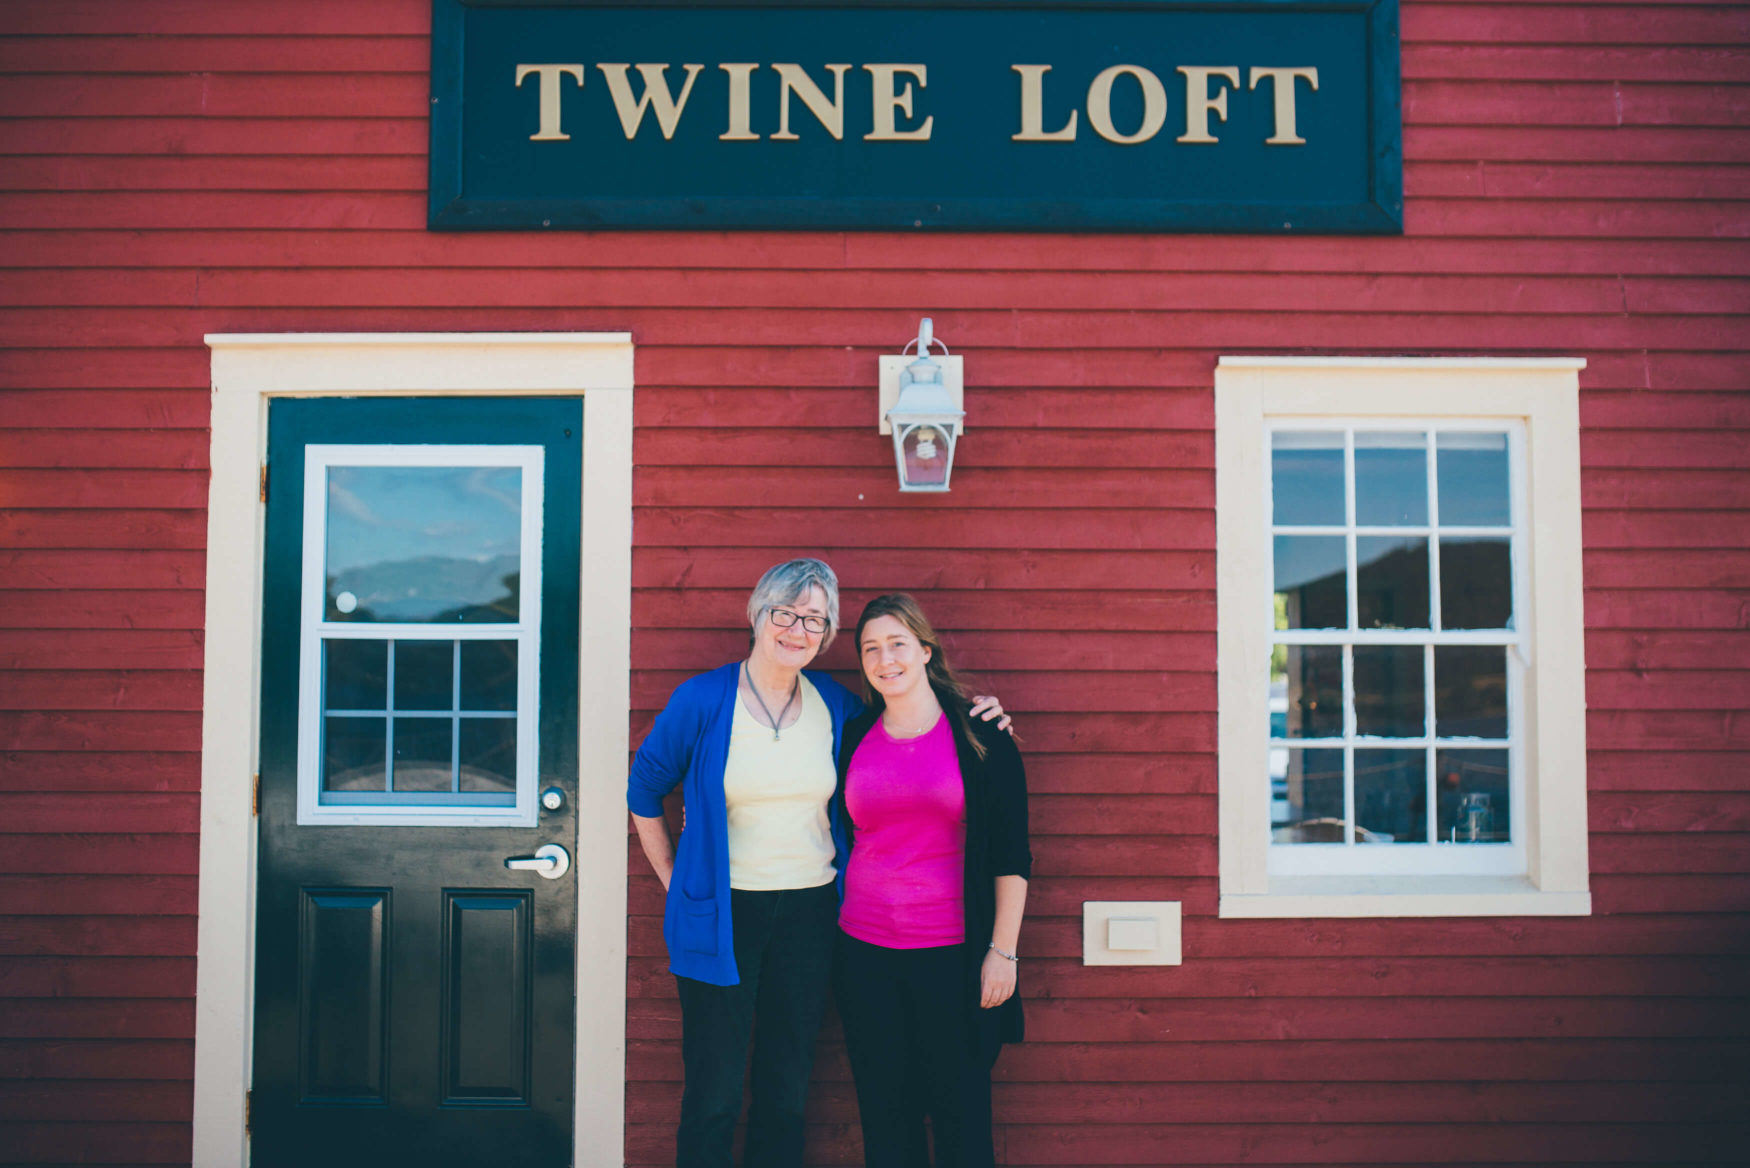 Mother and daughter Tineke and Marieke Gow co-run the Artisan Inn started by Tineke in 1992